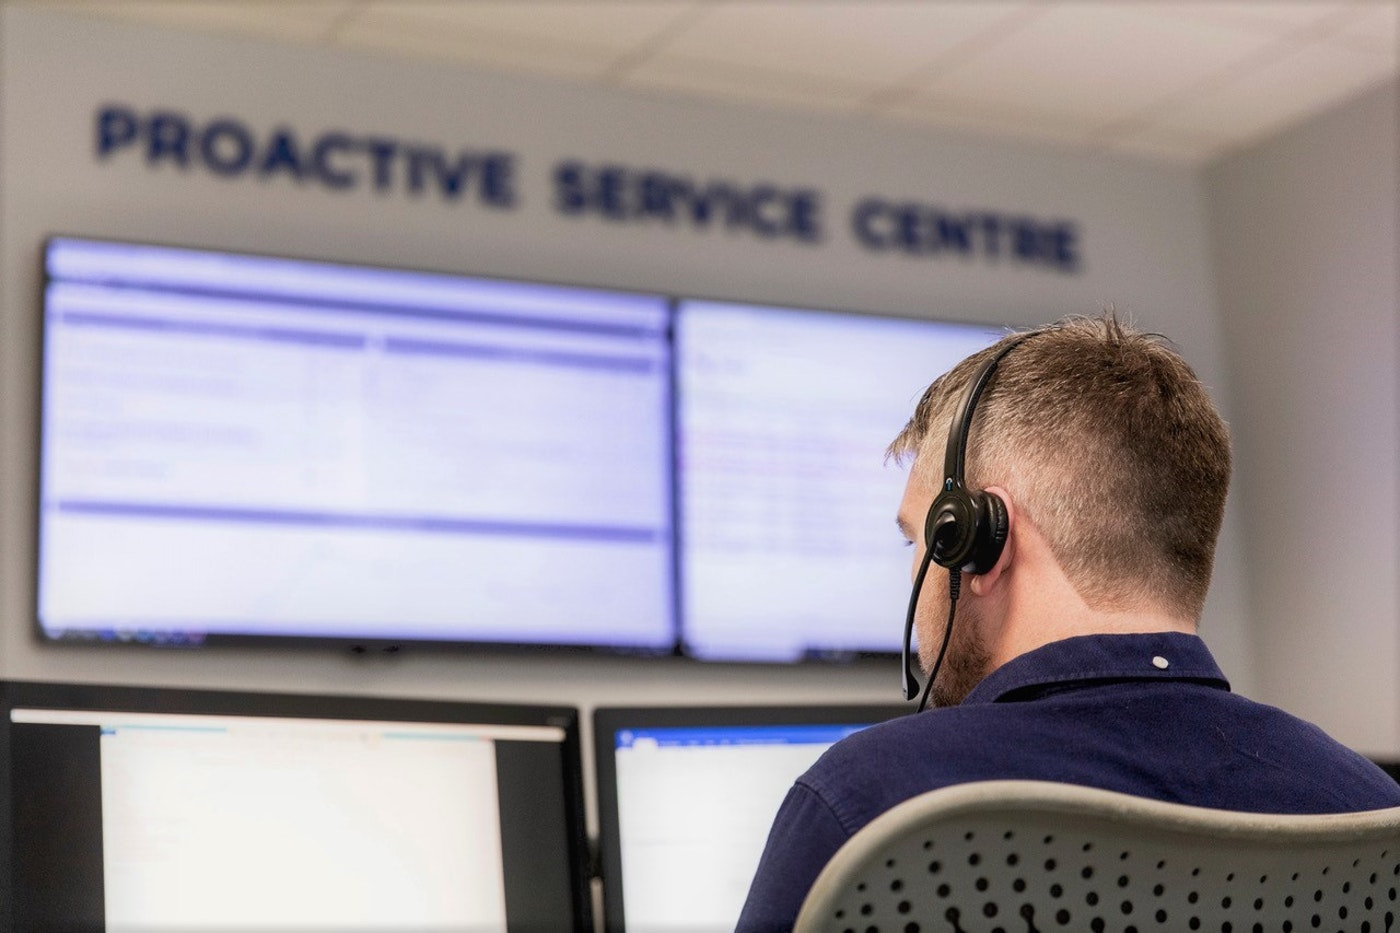 Why you should consider engaging with an IT Services partner